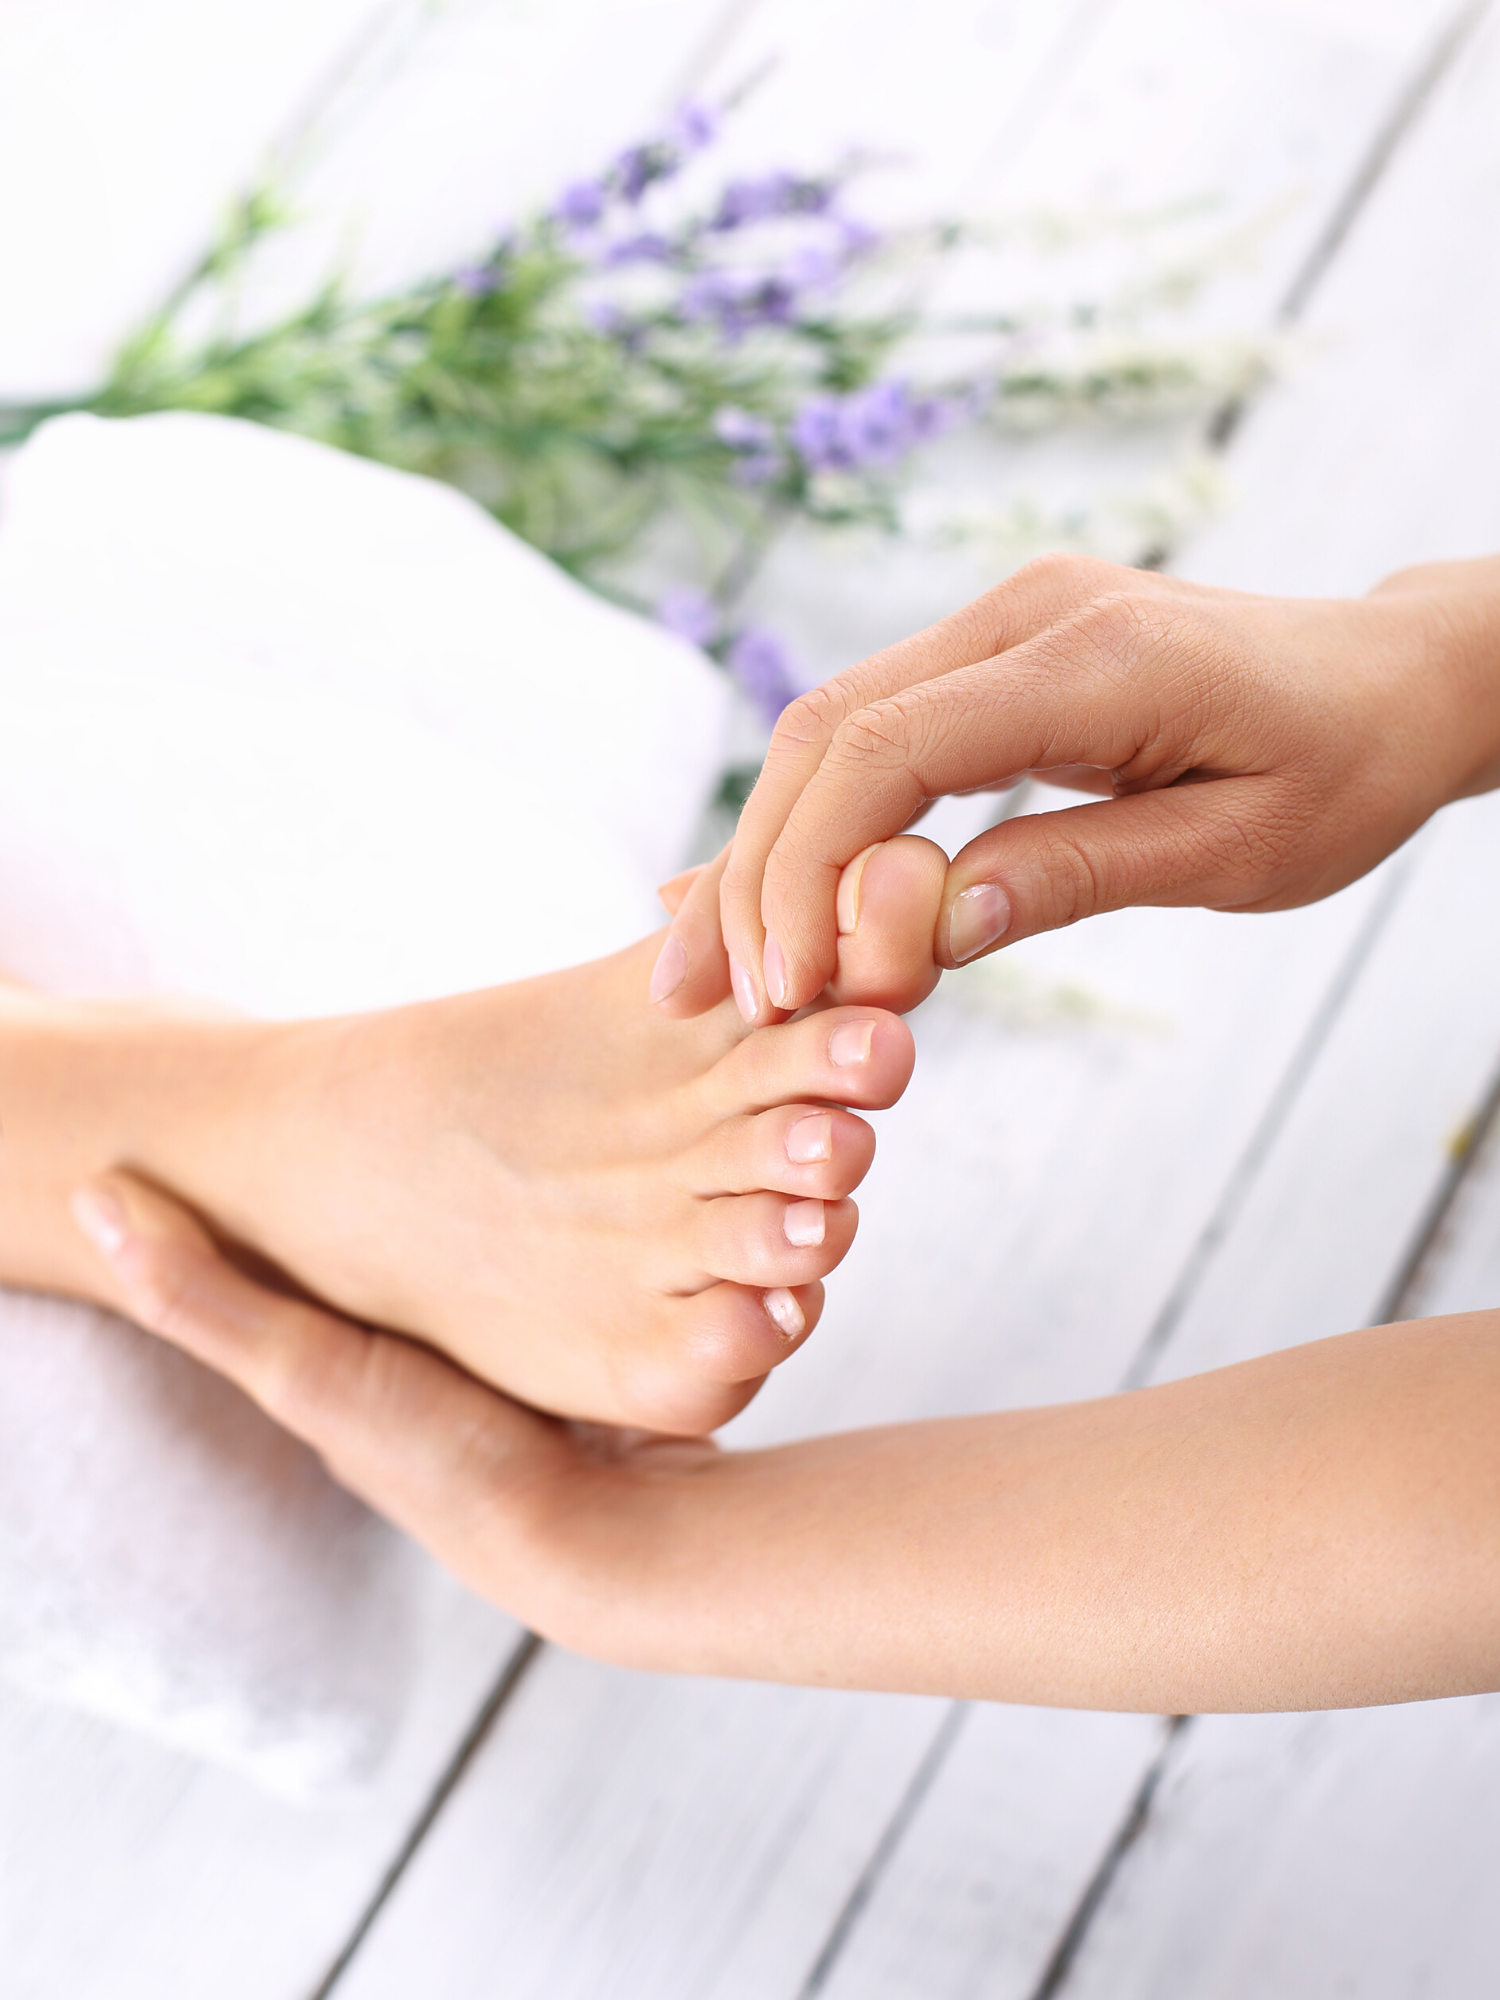 Learn about reflexology at Halifax Reflexology